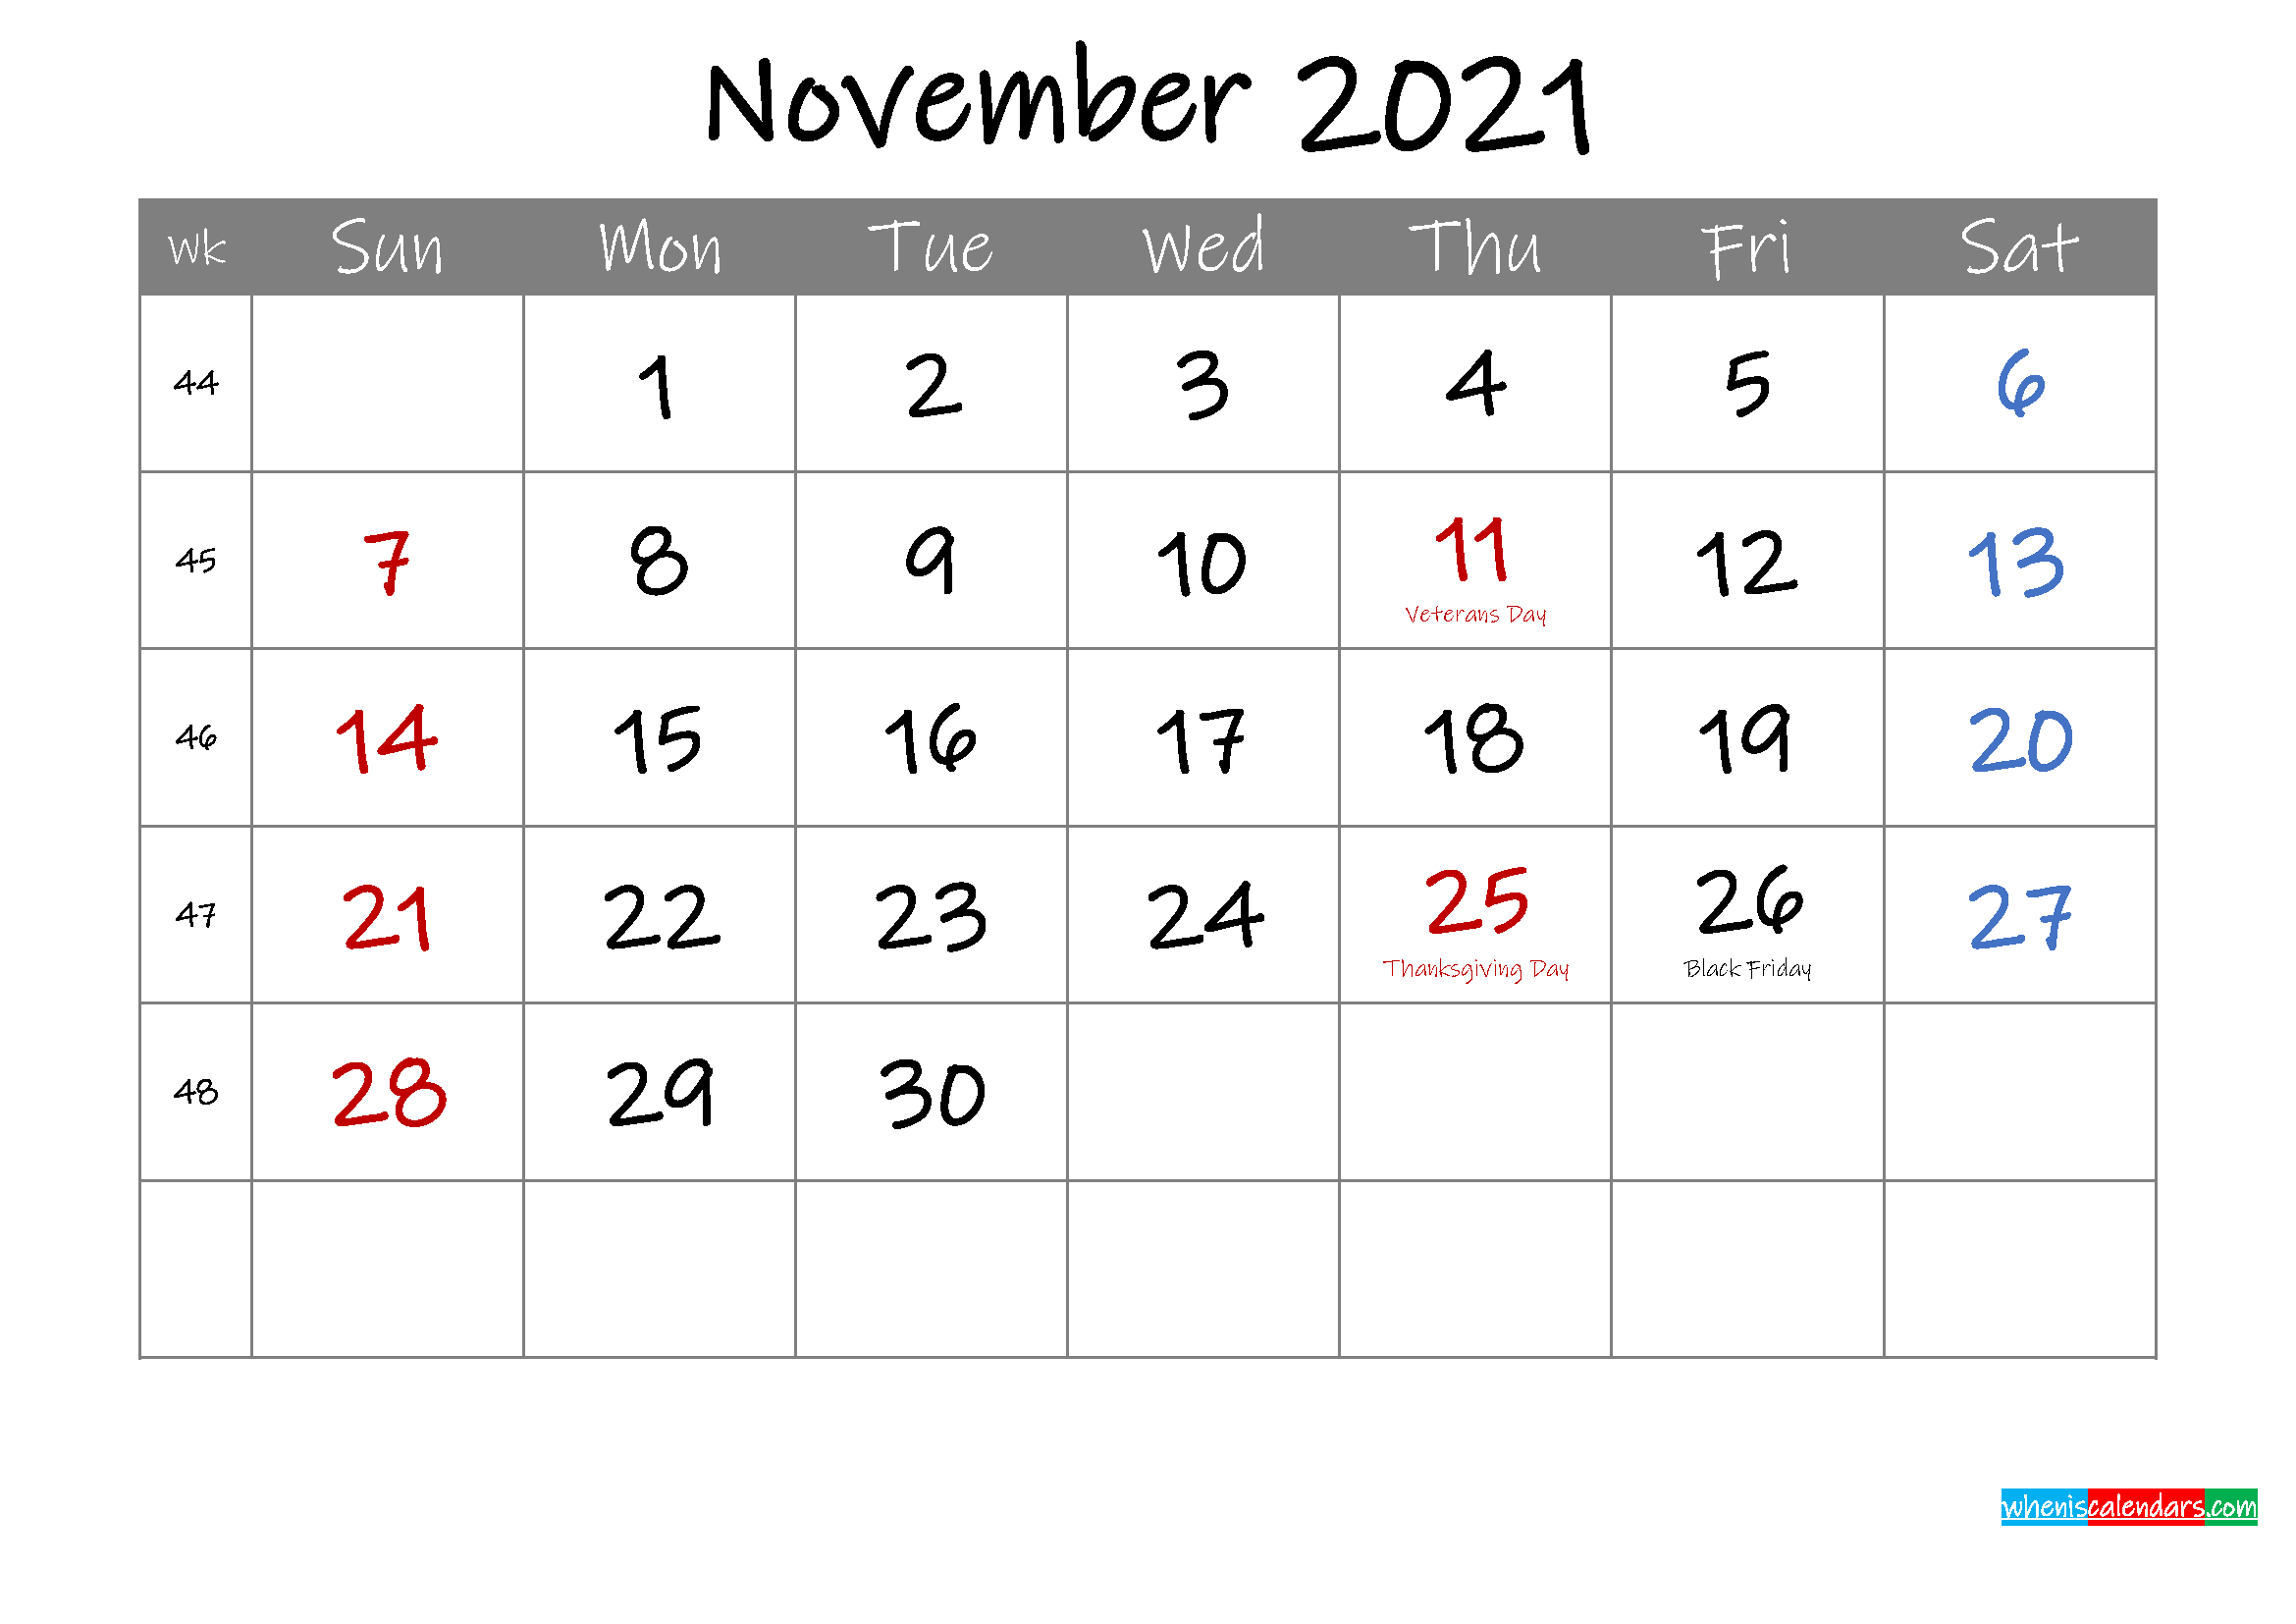 Editable November 2021 Calendar with Holidays